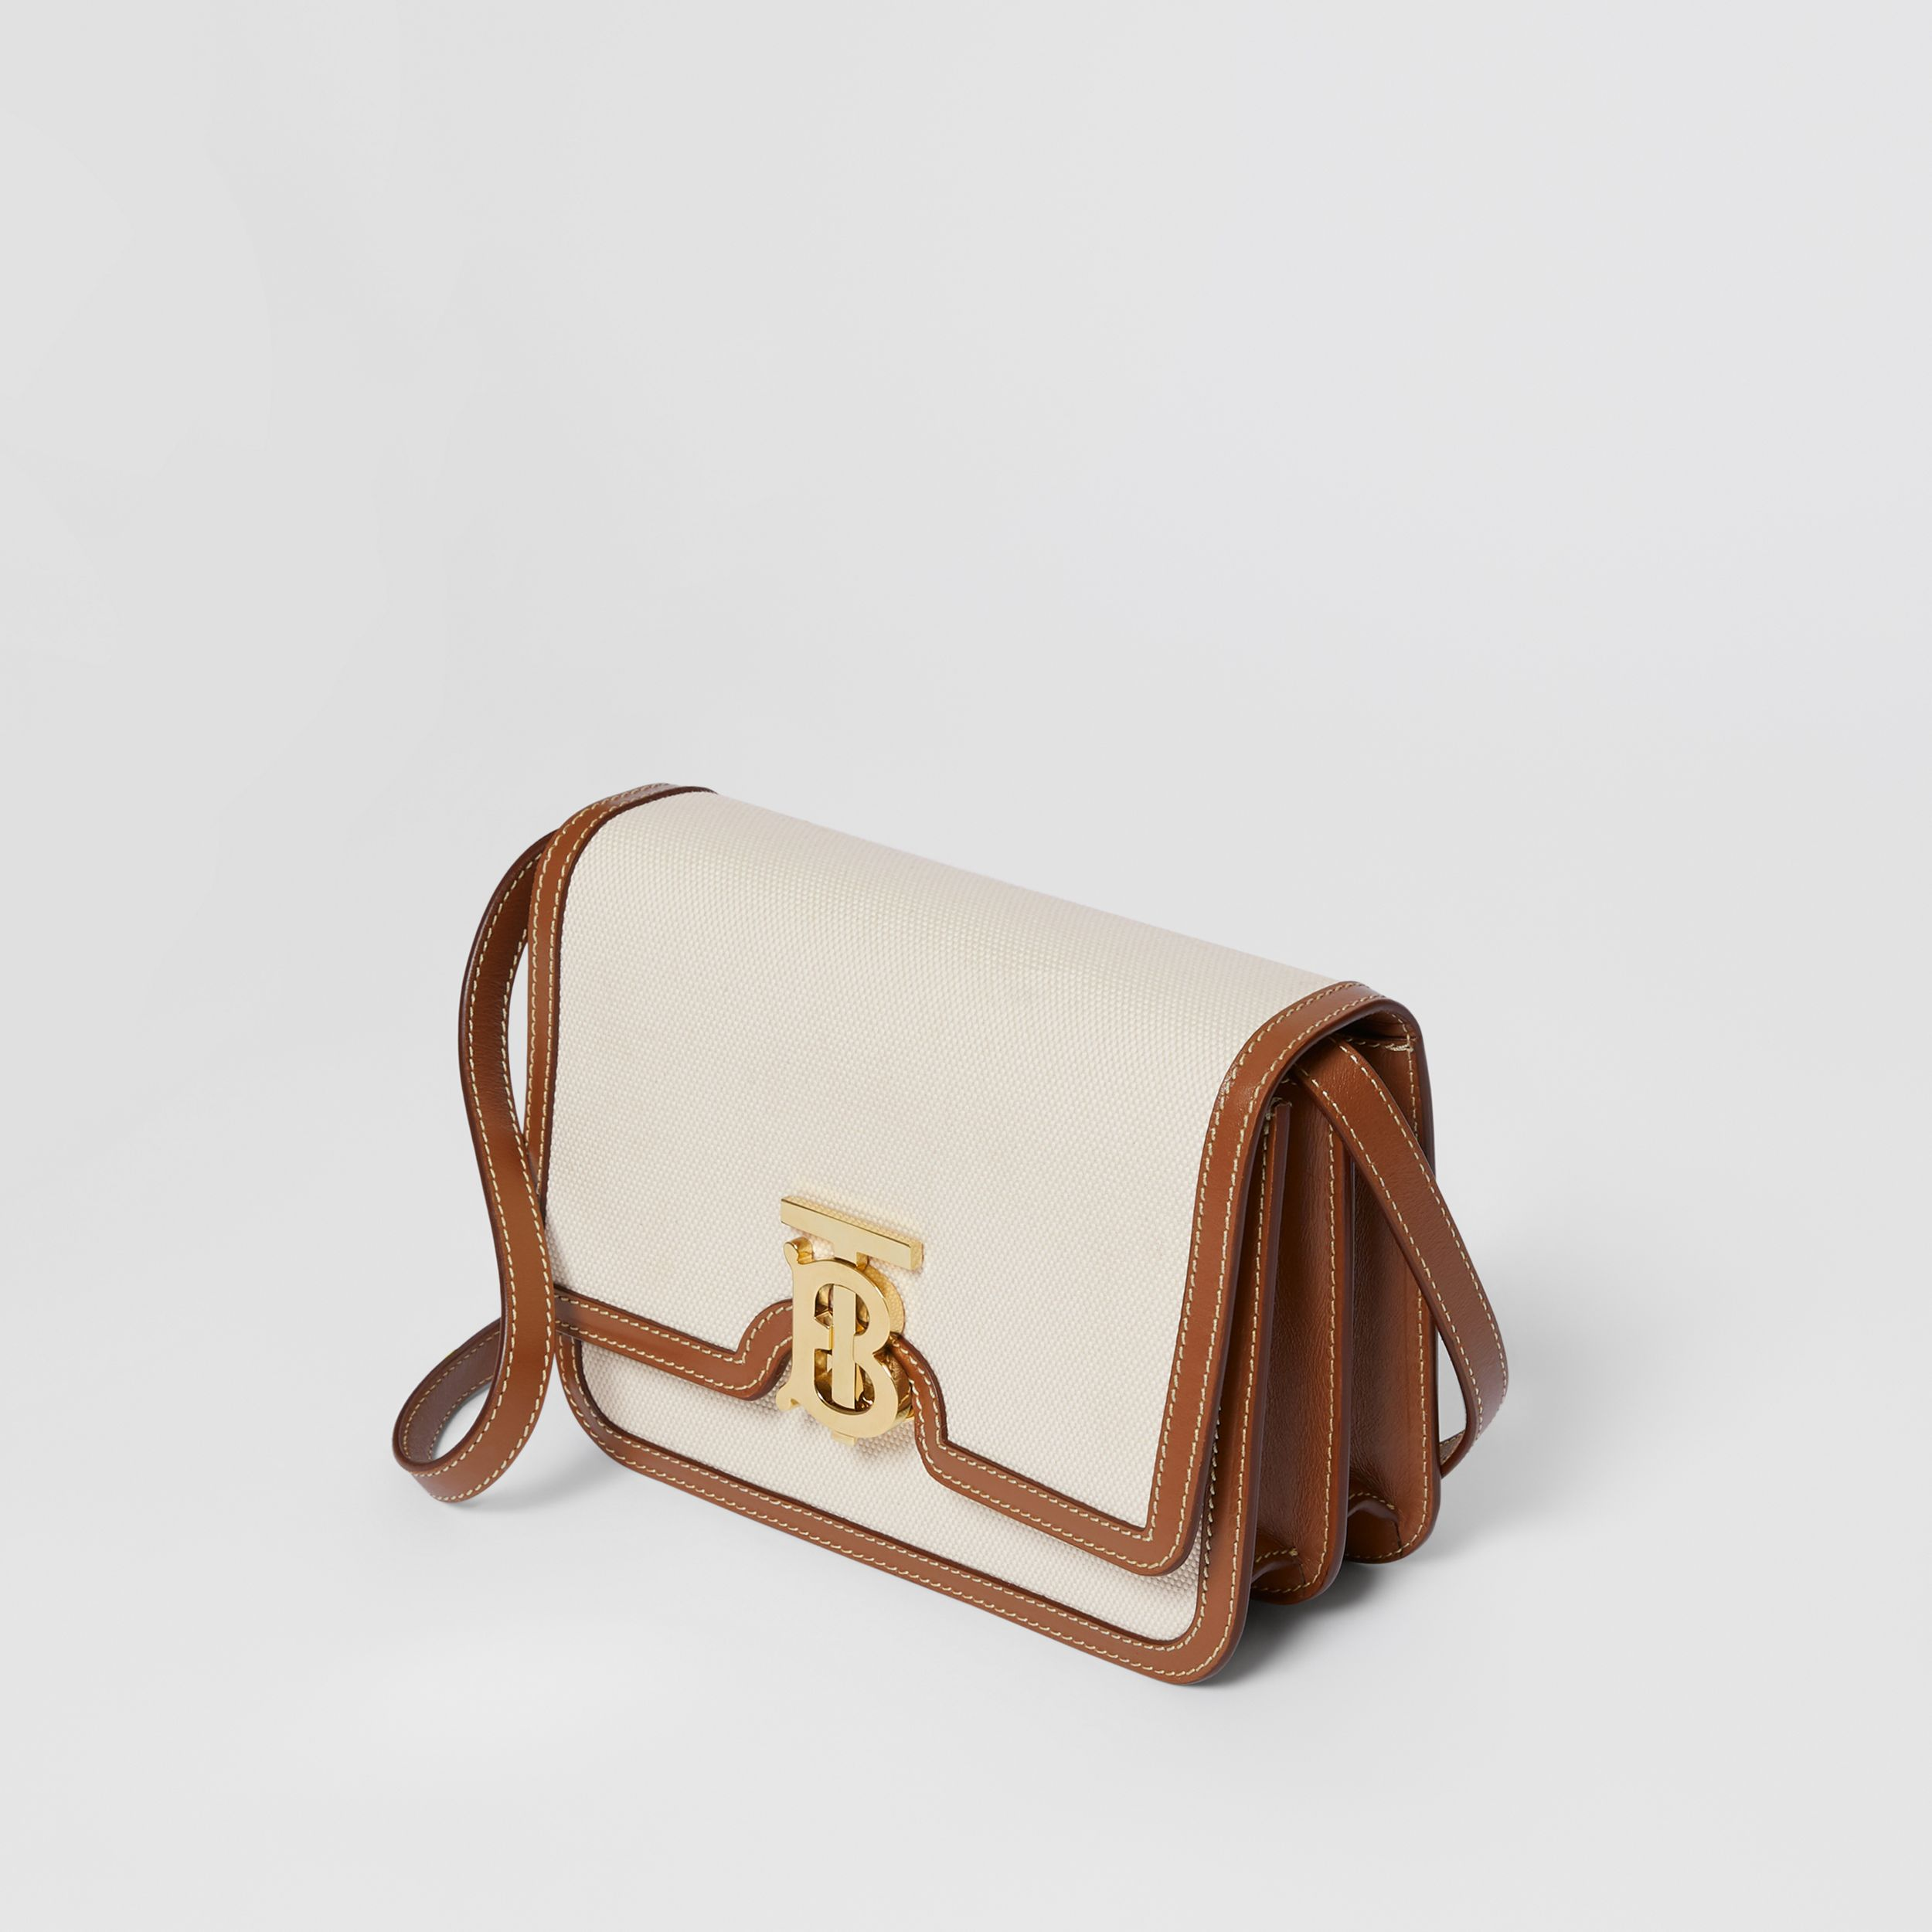 Small Two-tone Canvas and Leather TB Bag in Natural/malt Brown - Women | Burberry - 3